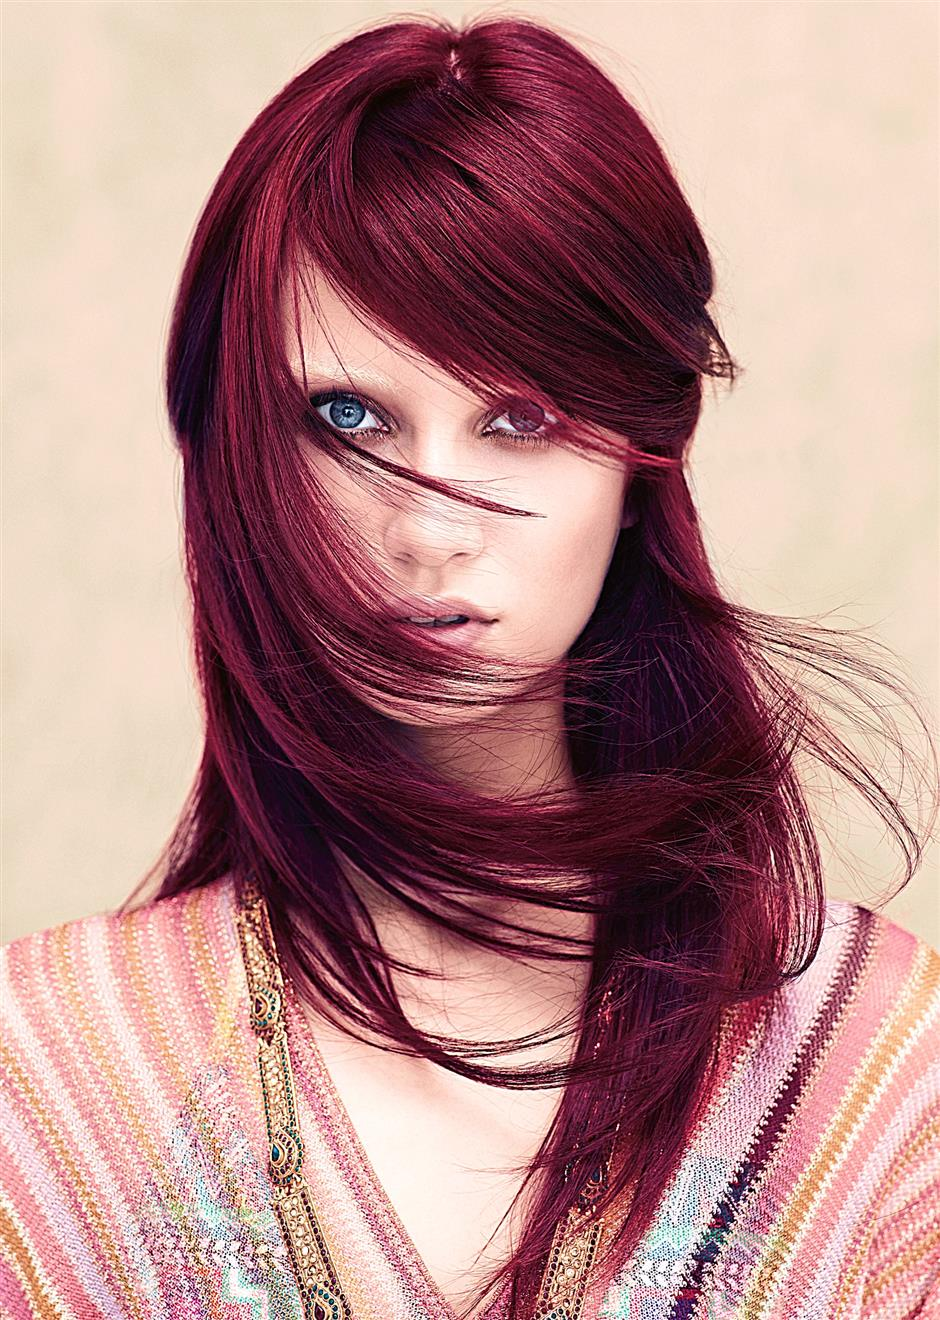 You can choose to colour your hair the safe way using Aveda which has natural plant-based ingredients.